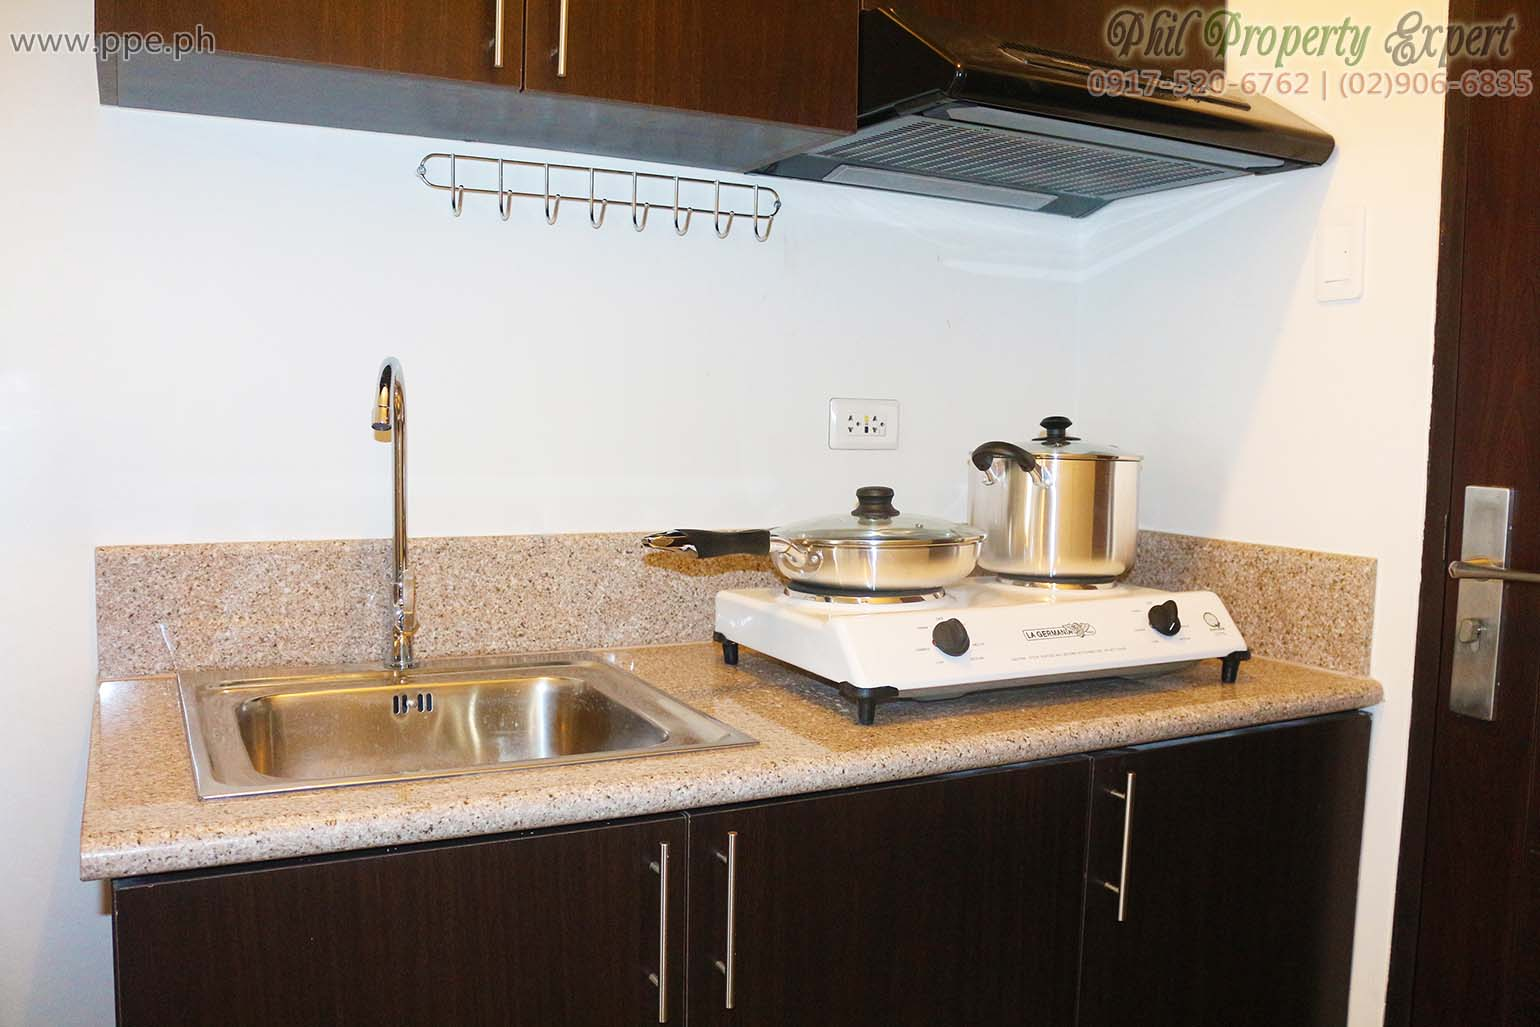 Affordable Studio Type For Rent In Mandaluyong Axis Residences Pioneer